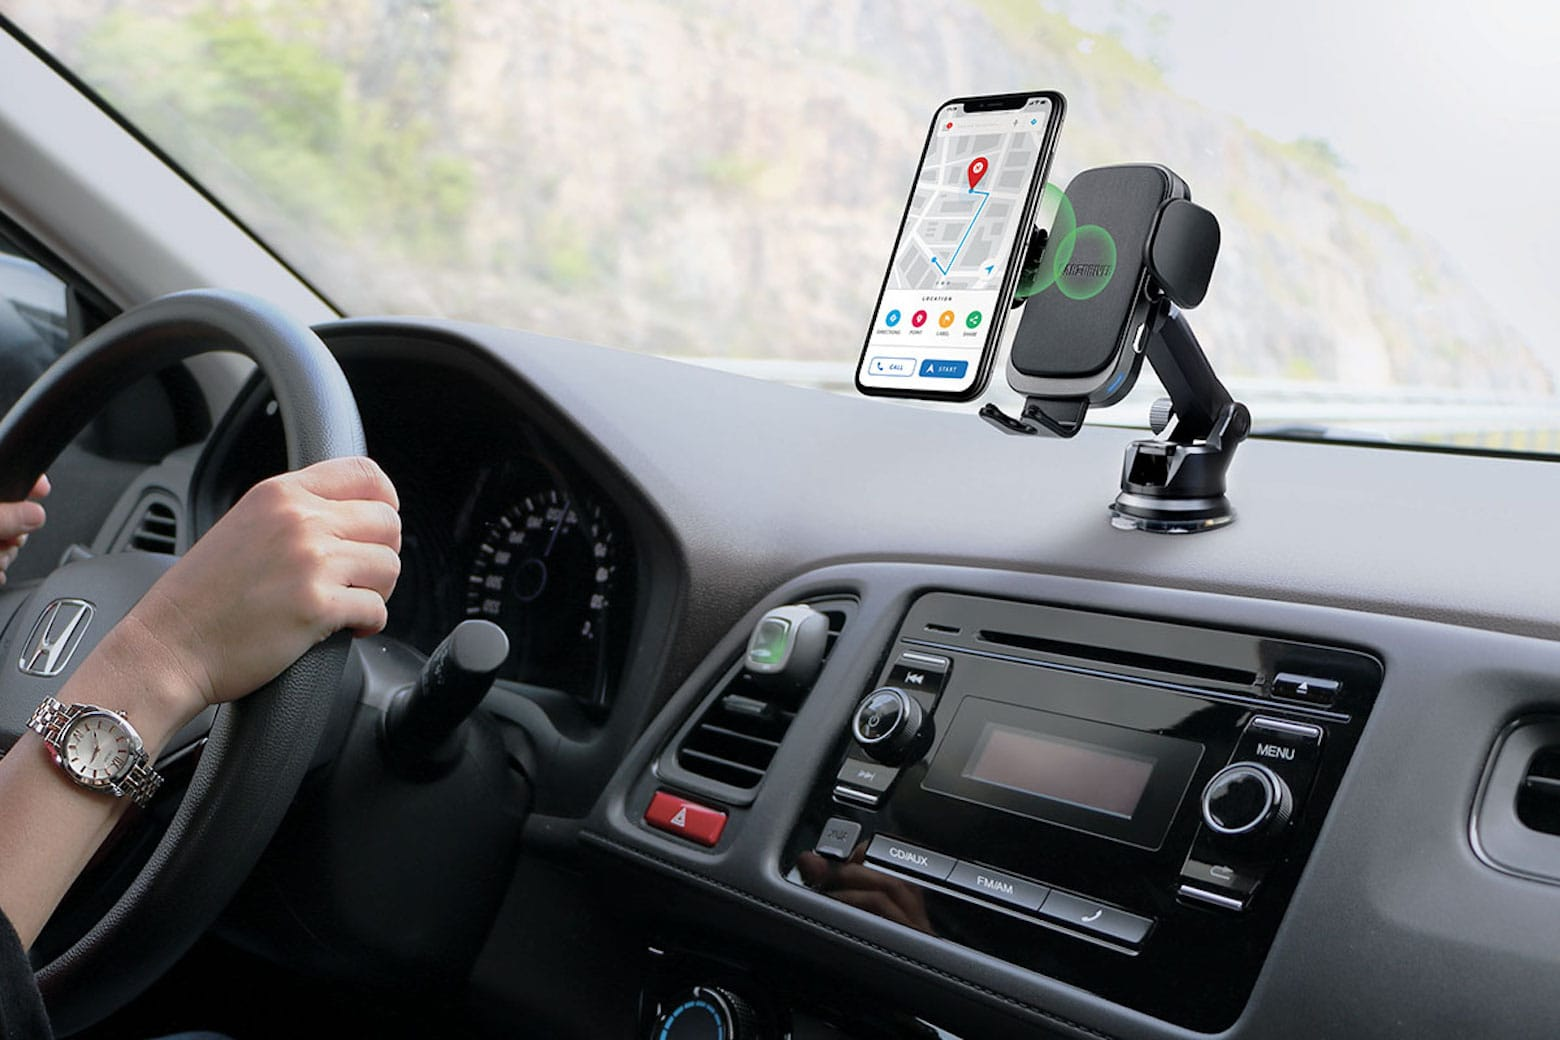 Drive safer with one of these discount iPhone car mounts | Cult of Mac